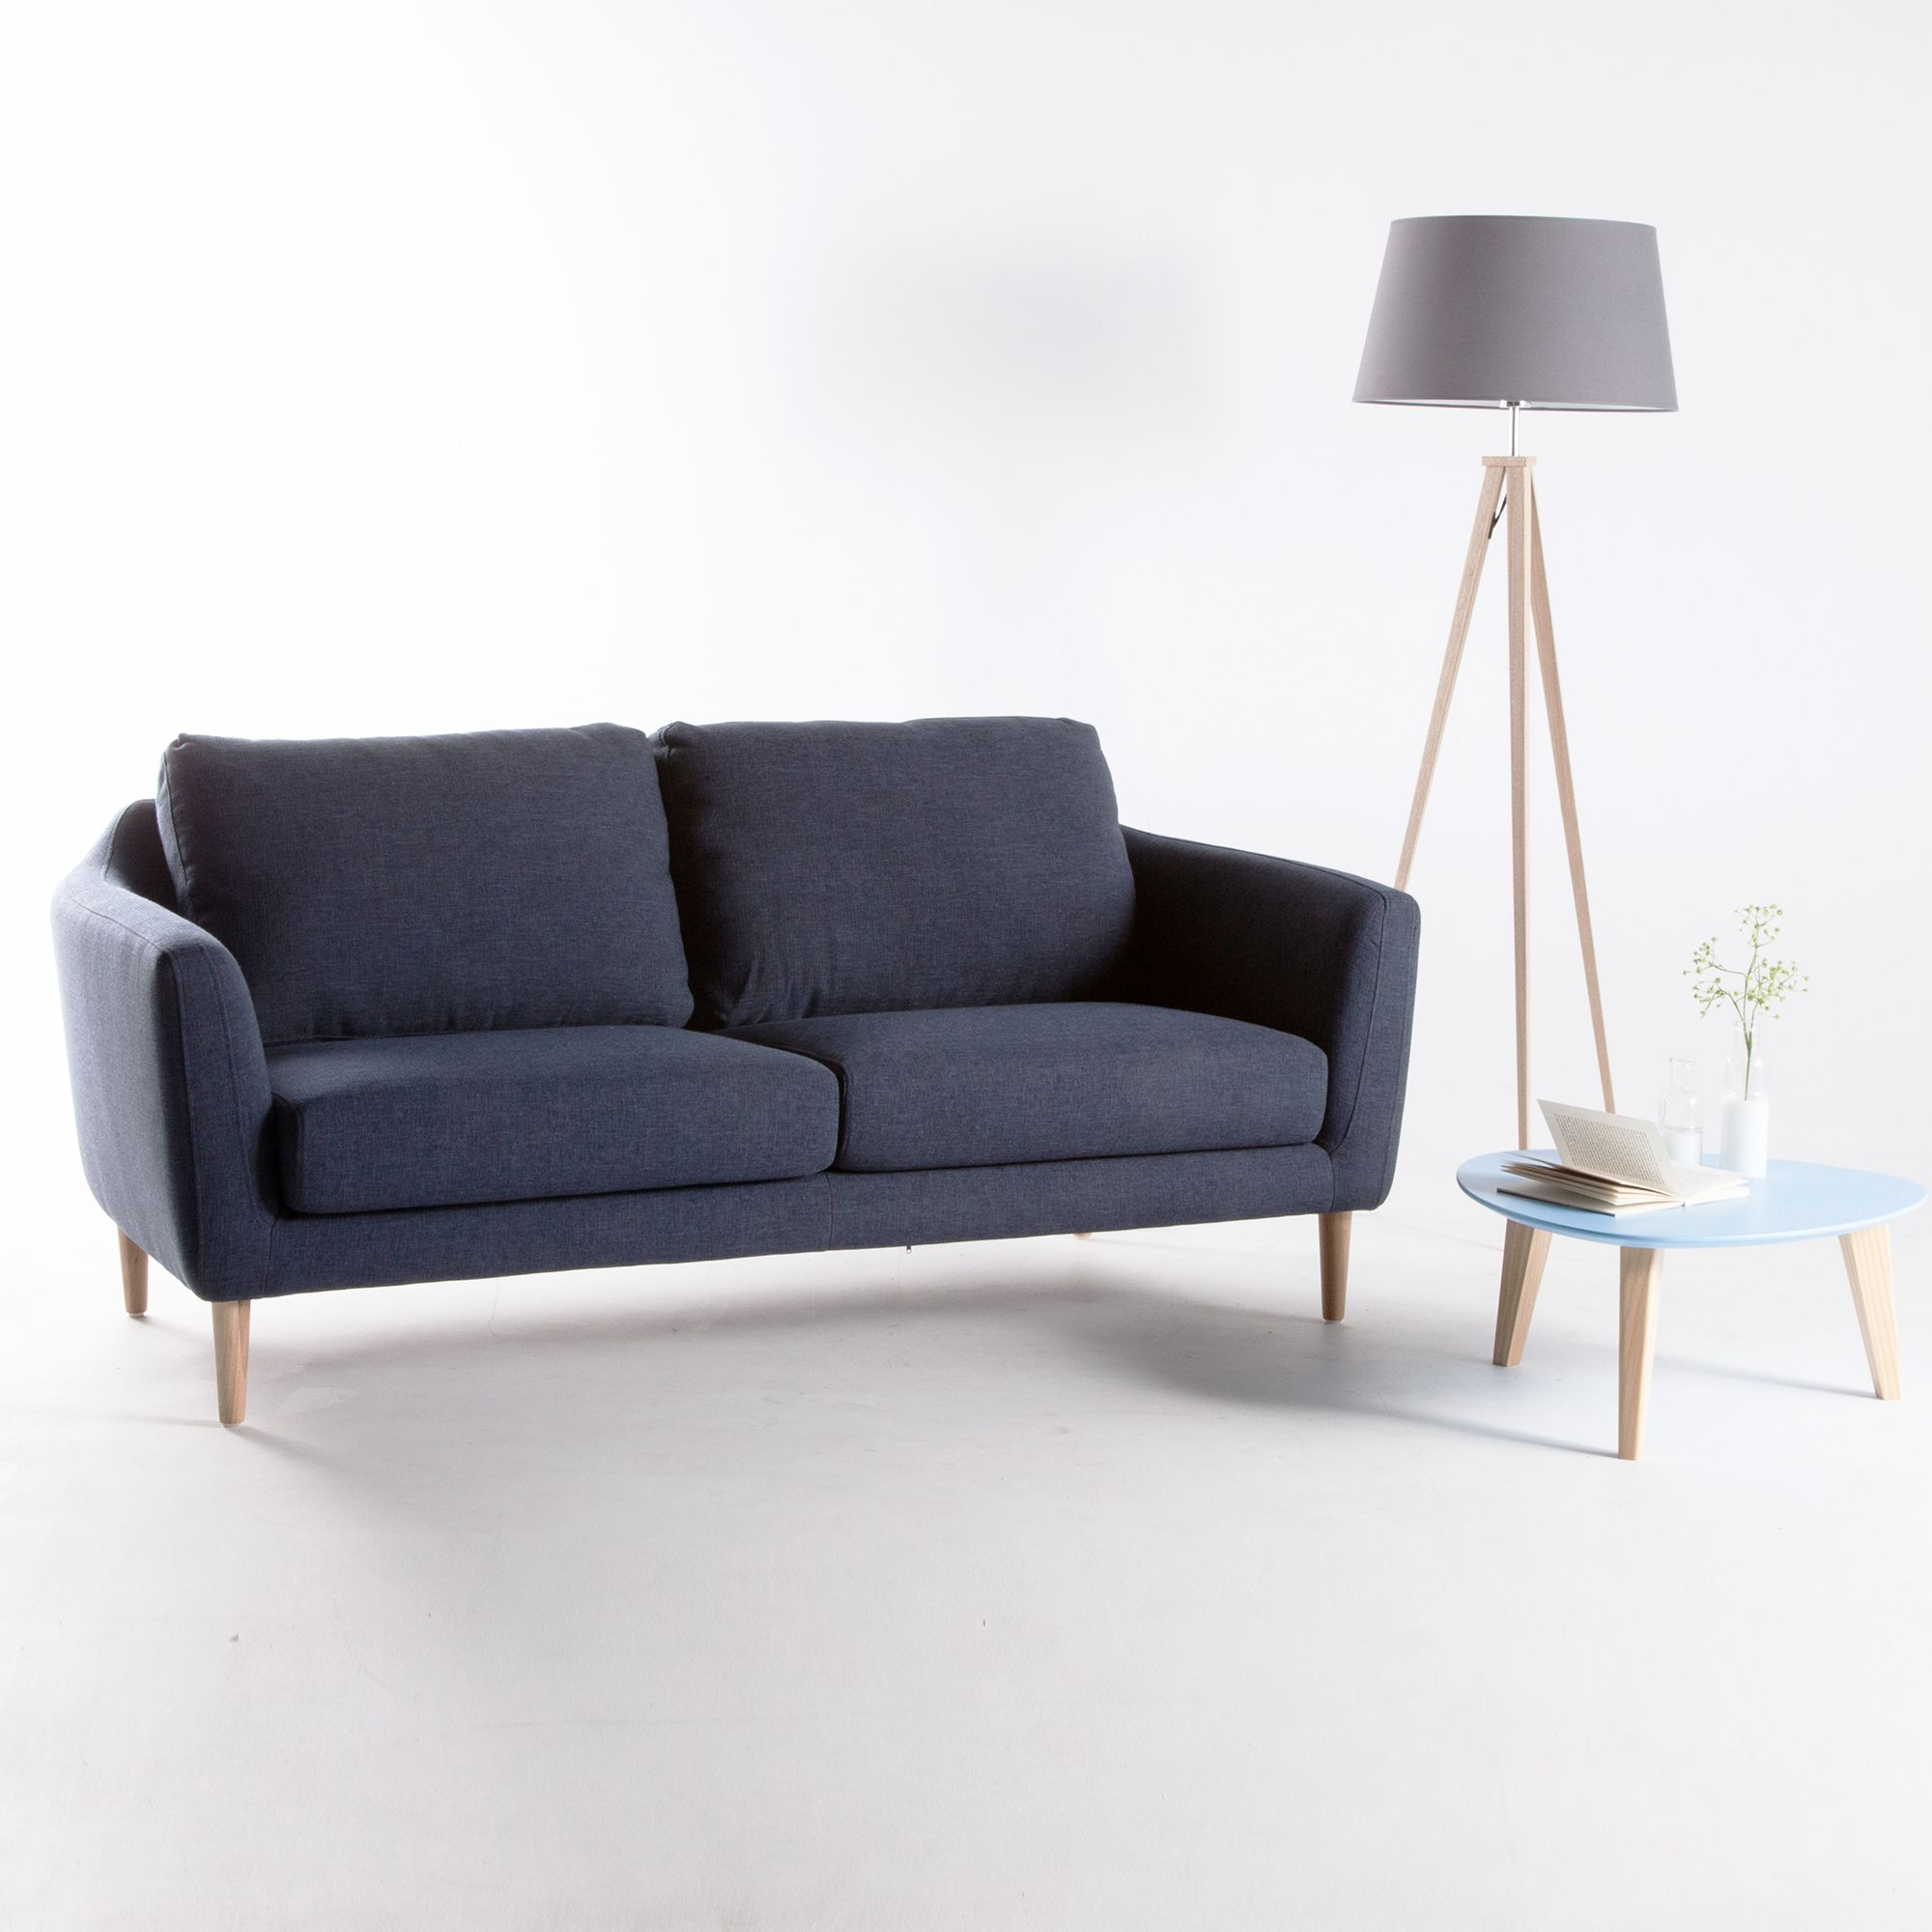 Canapa C Fixe Tissu Pieds Bois Style Scandinave Hej Living Room